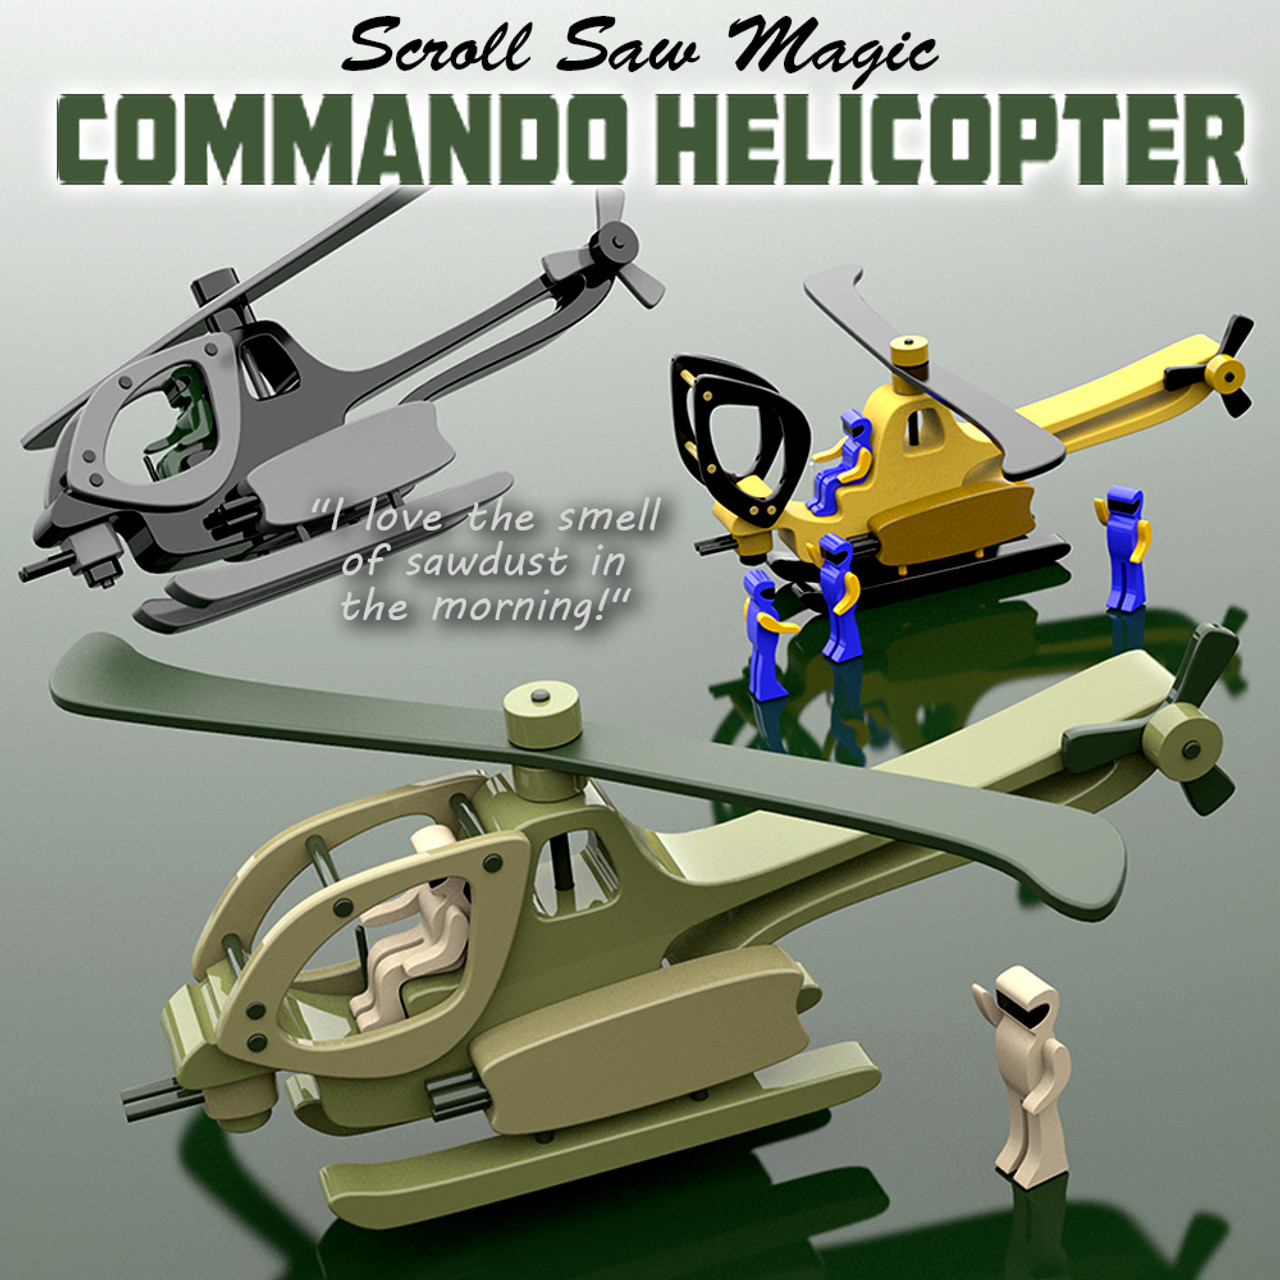 scroll saw magic commando helicopter wood toy plans (pdf download)